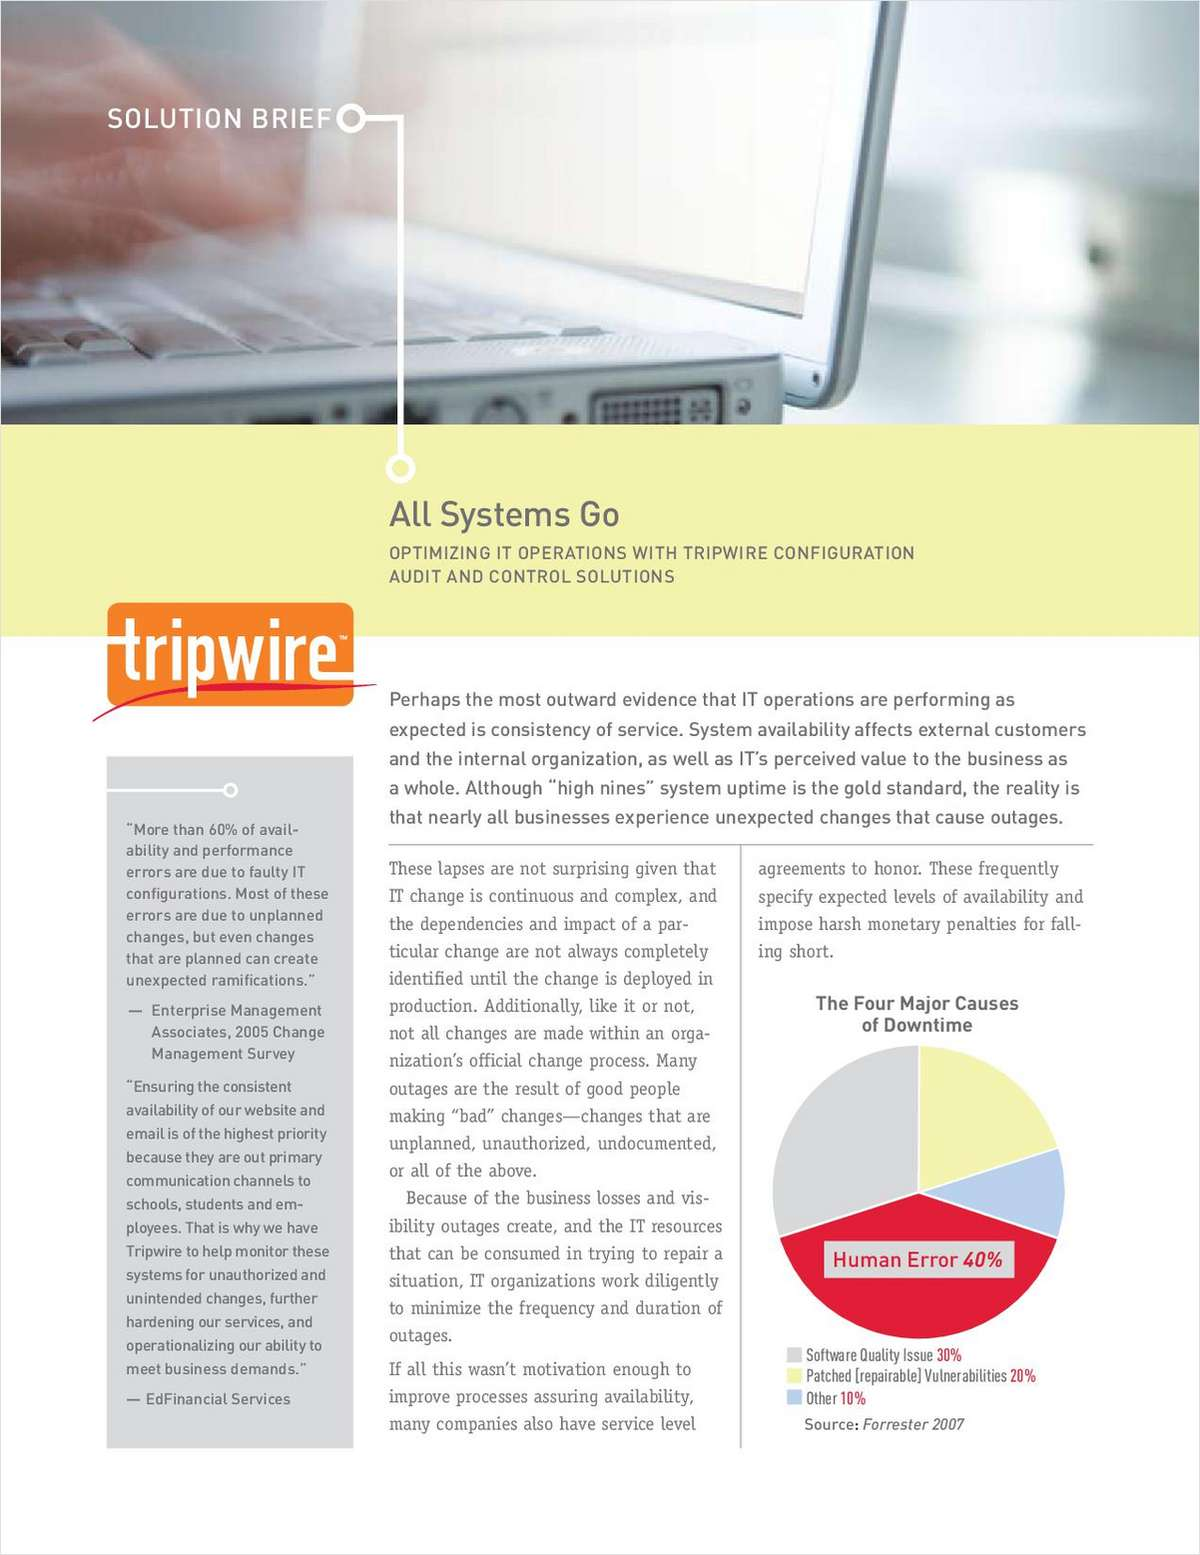 All Systems Go: Optimizing IT Operations with Tripwire